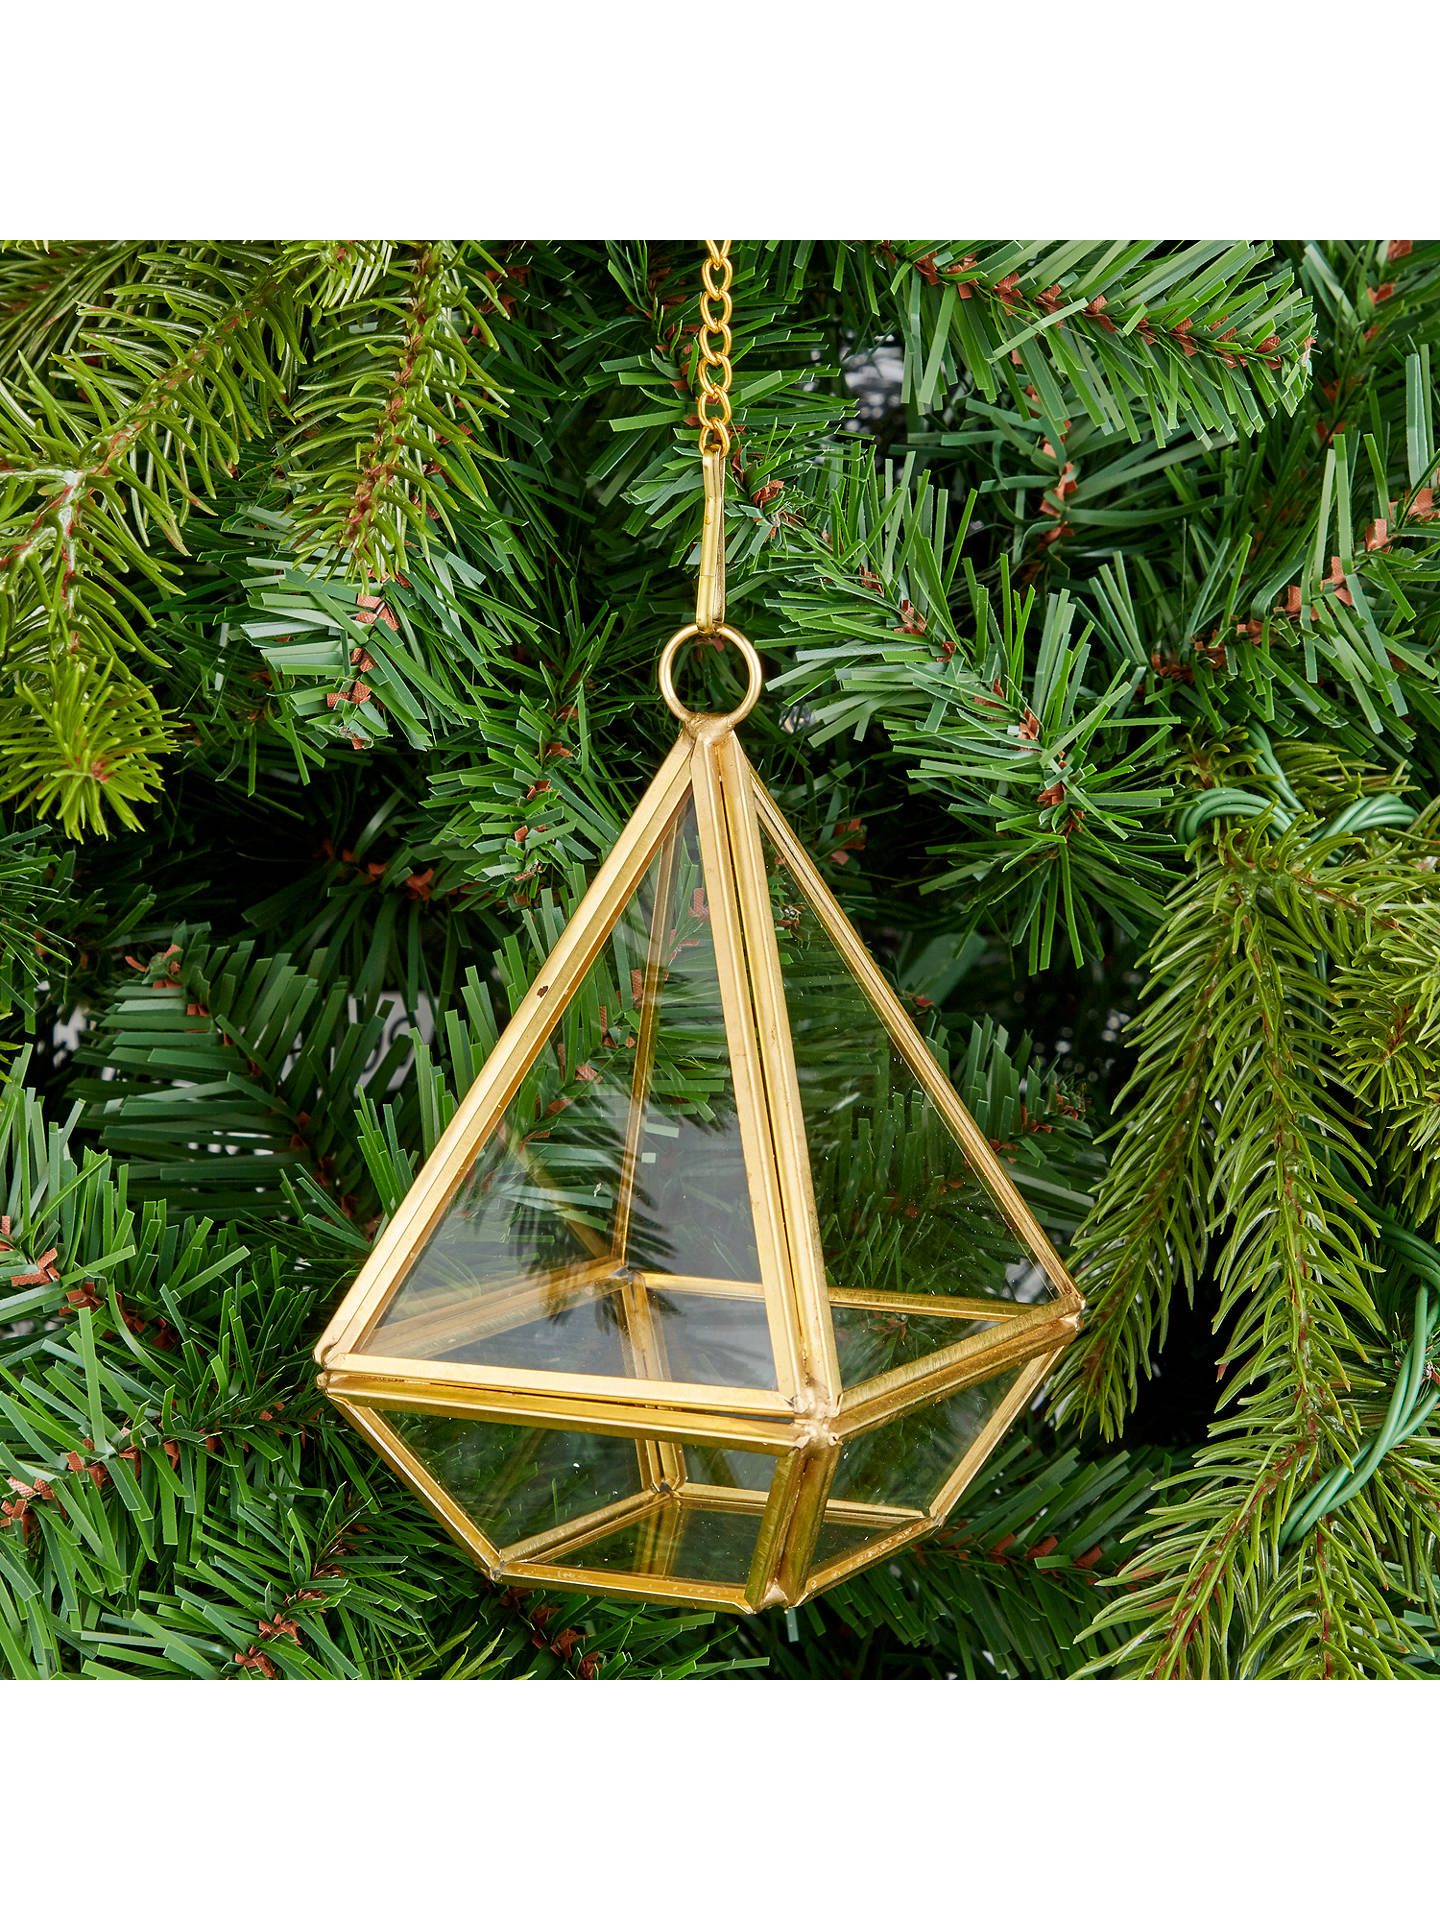 John Lewis Christmas Tree Decorations.John Lewis Into The Woods Terrarium Tree Decoration At John